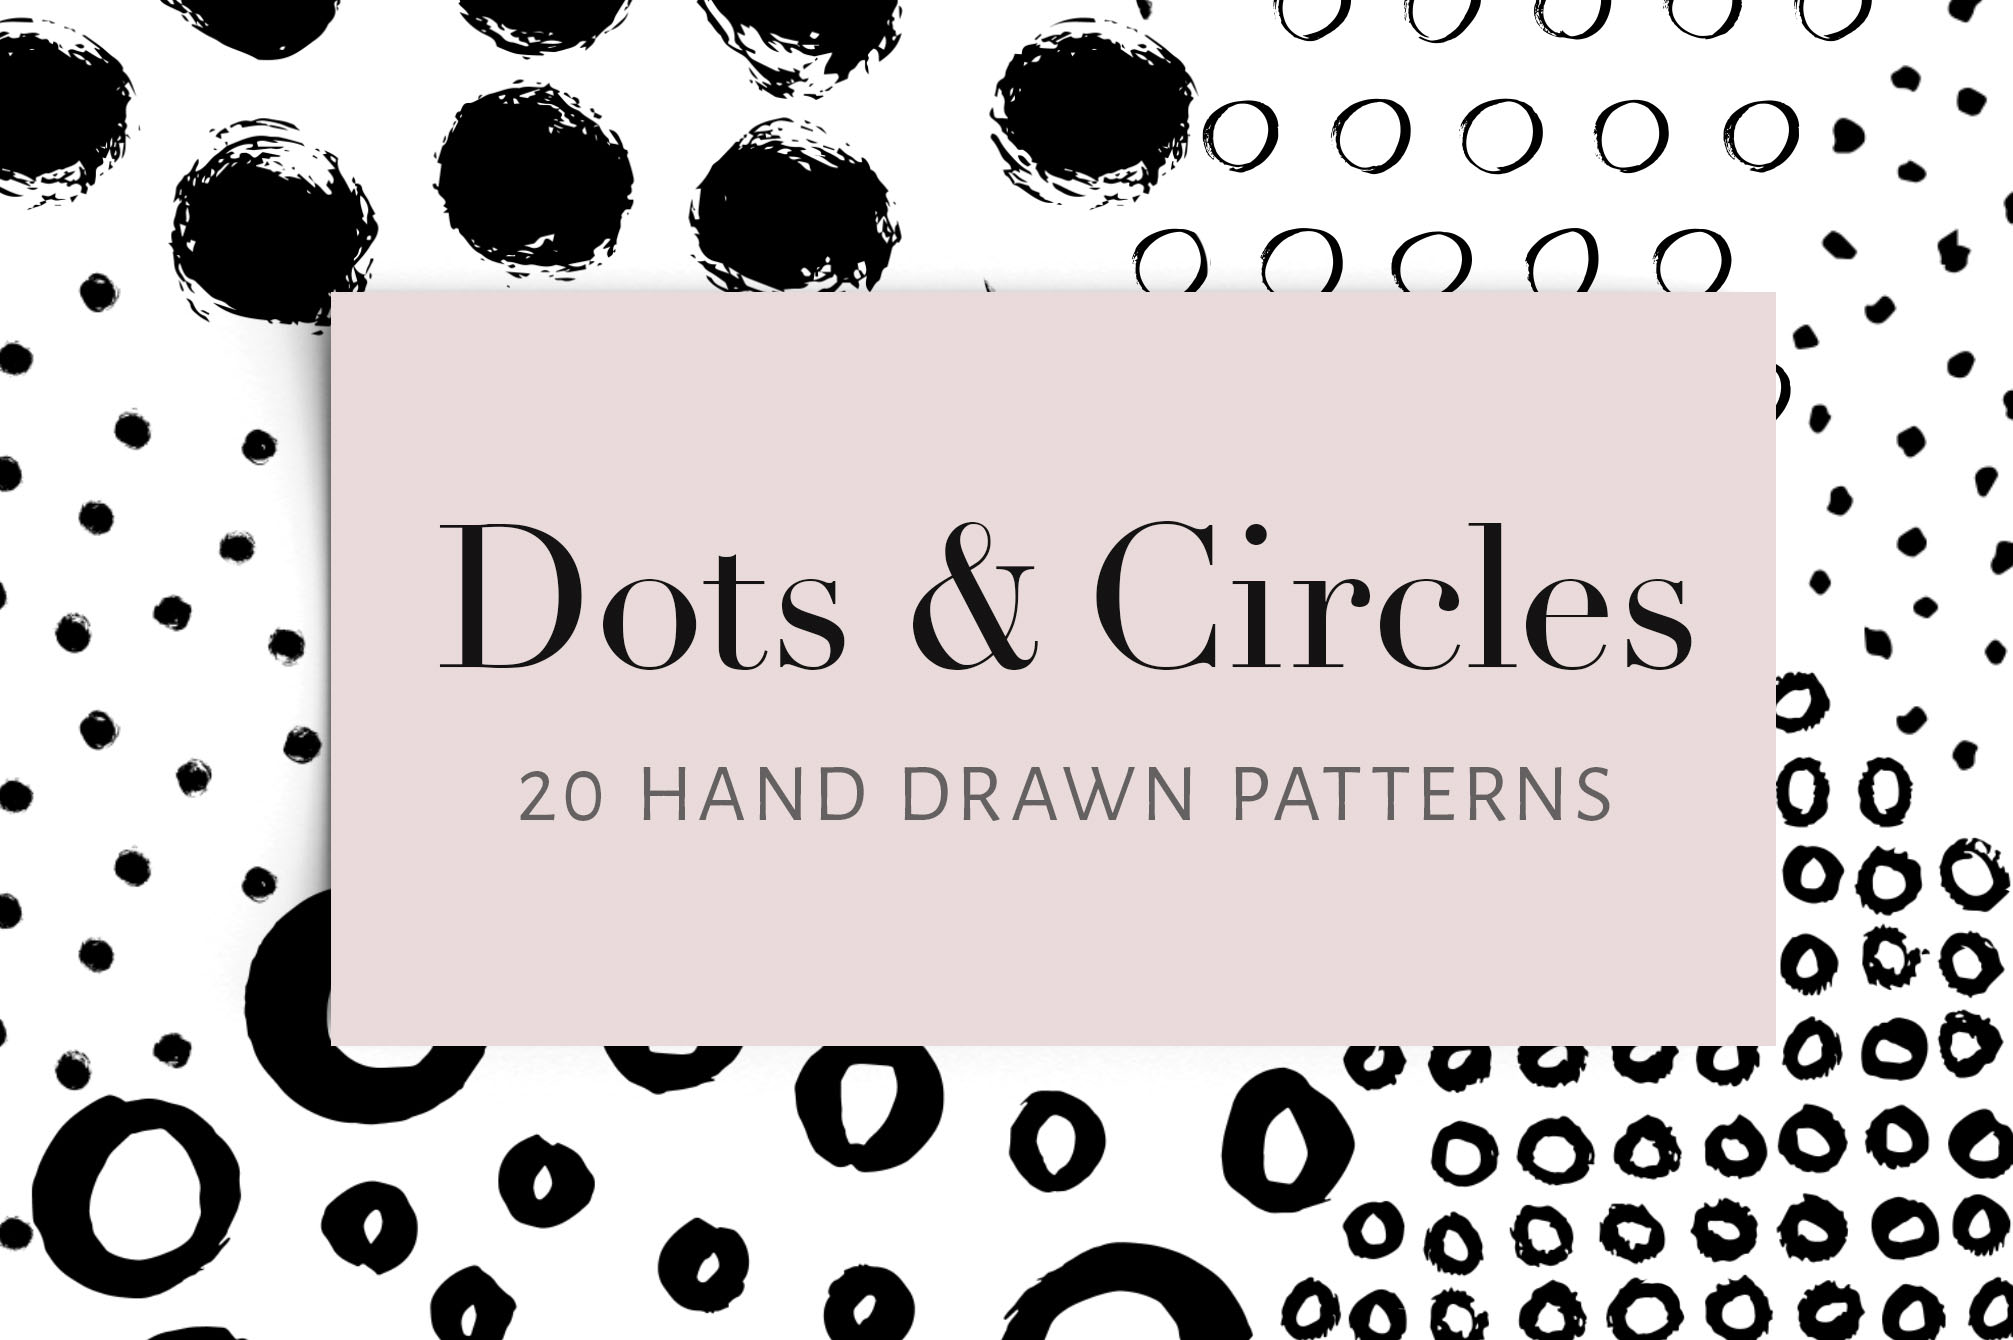 Dots and Circles - 20 Hand Drawn Patterns